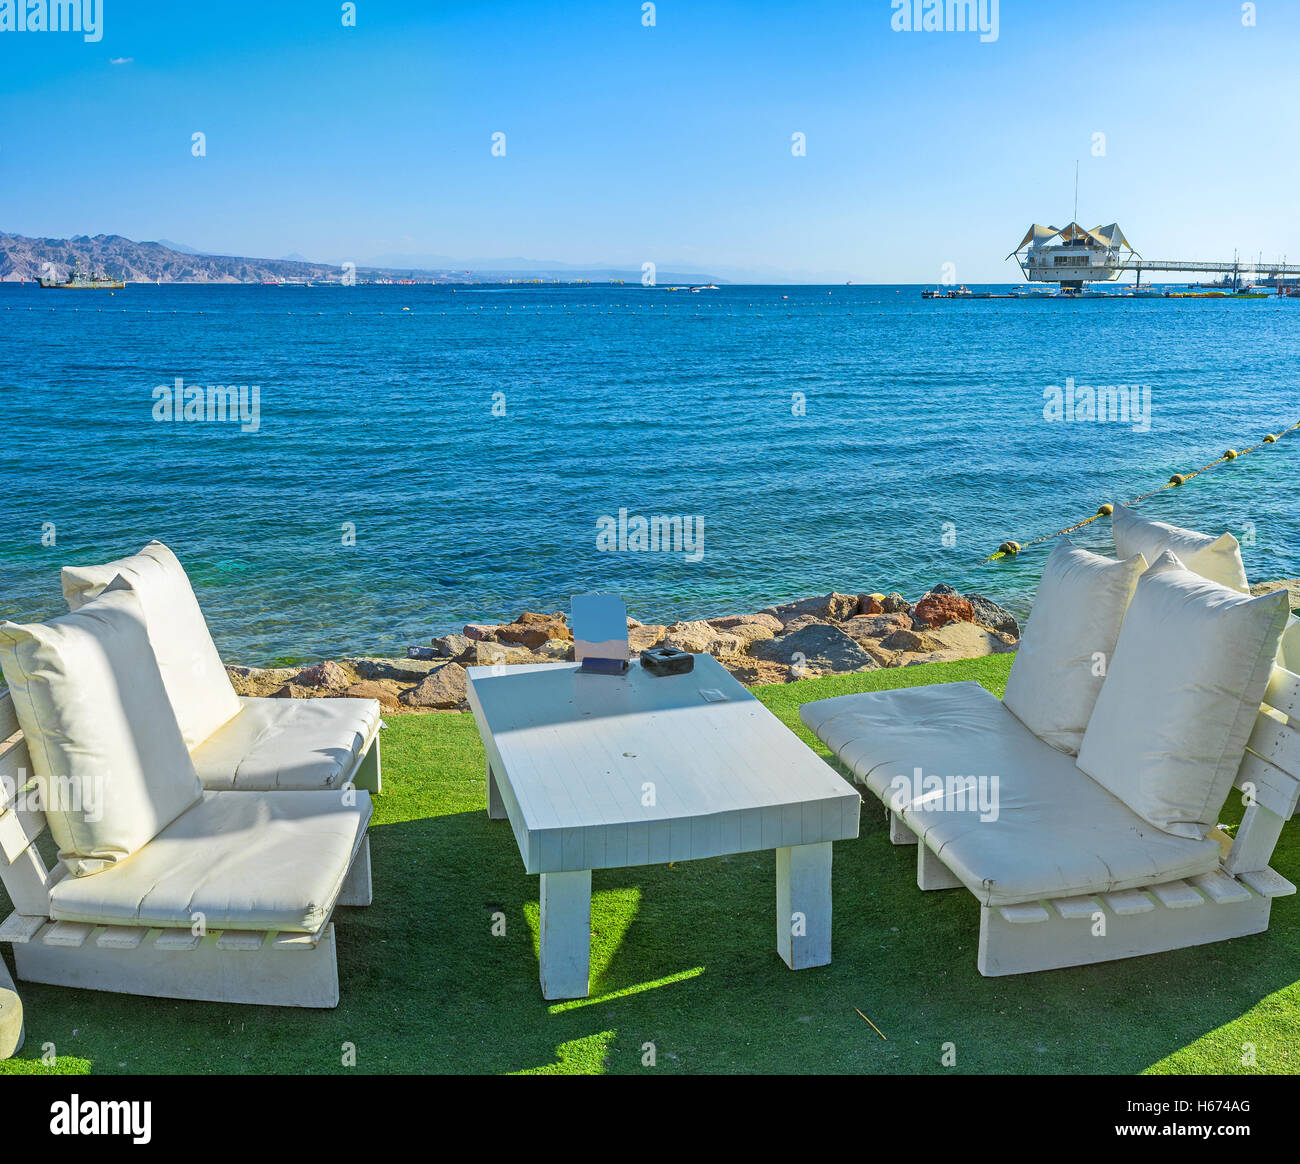 The cozy white benches in the beach cafe on the seashore with the view on the dive station, Eilat, Israel. Stock Photo